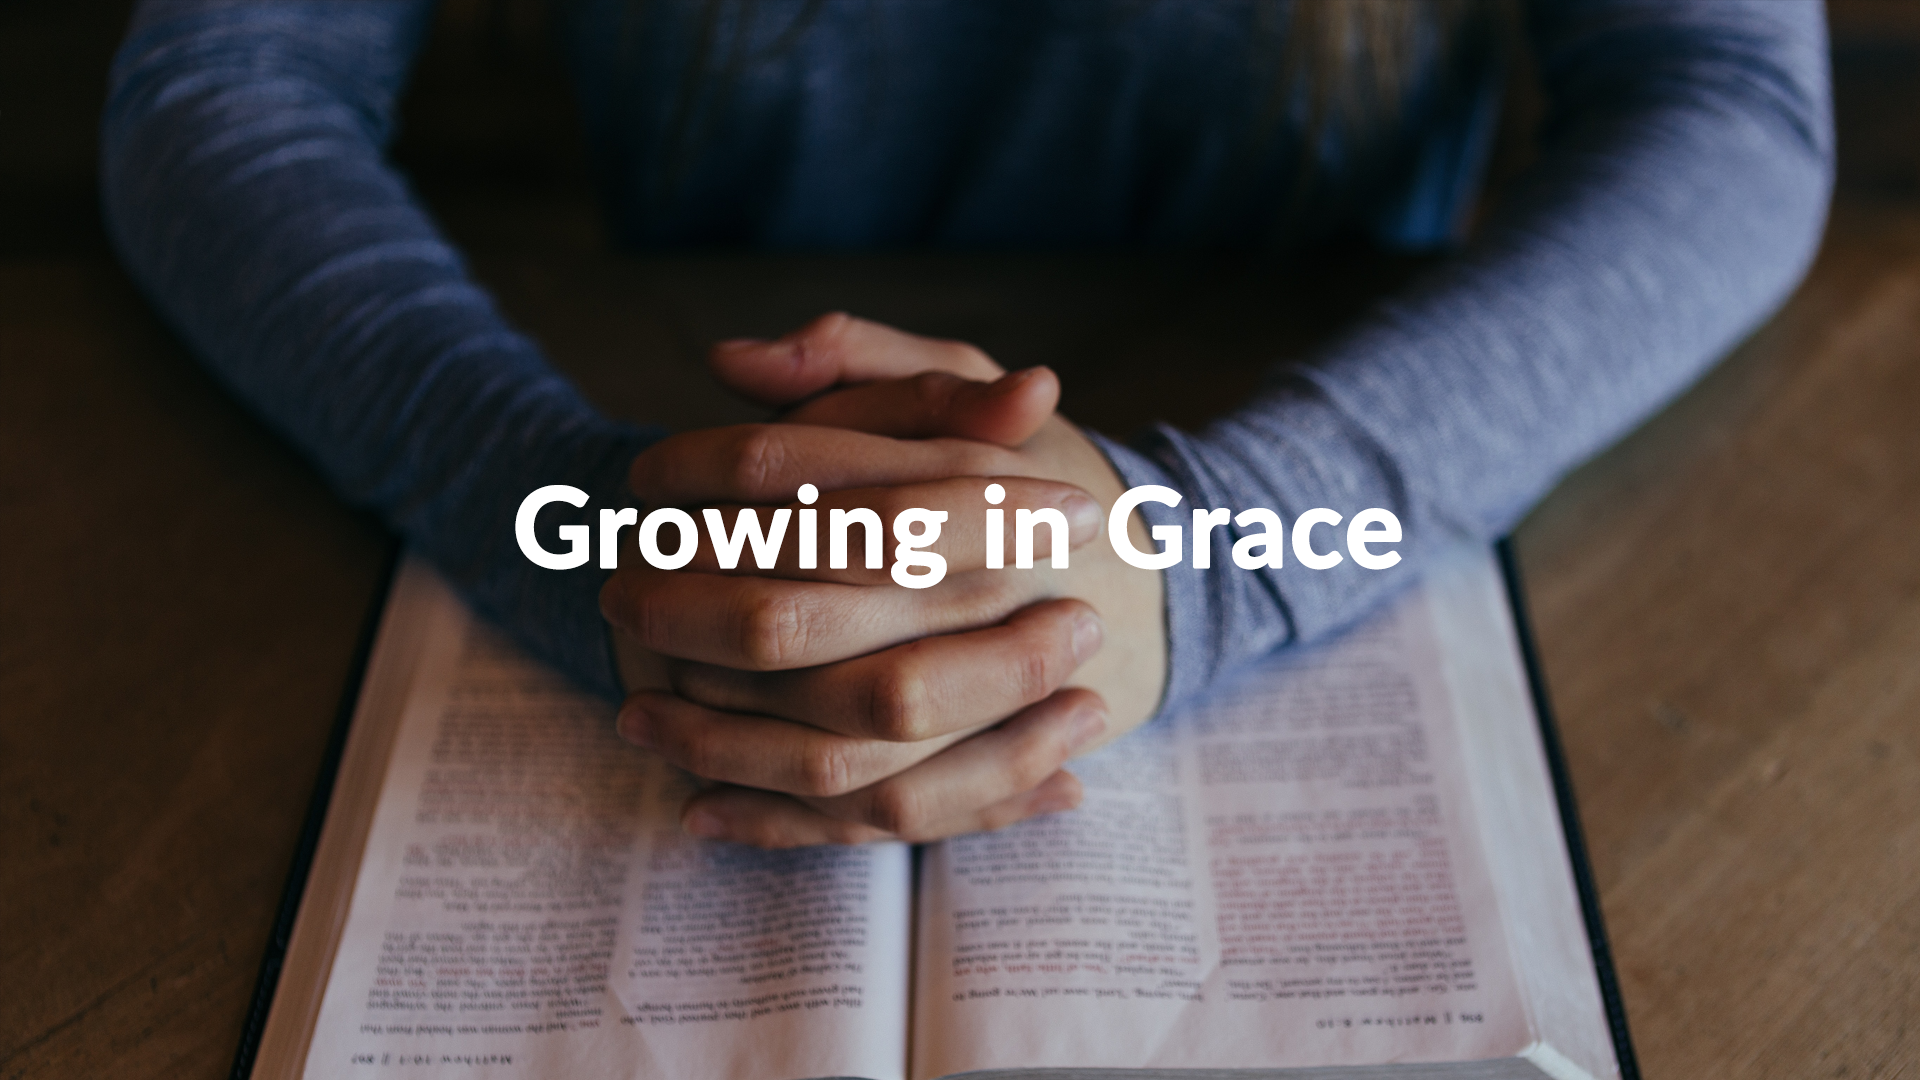 Grow in Grace 7-28-2019